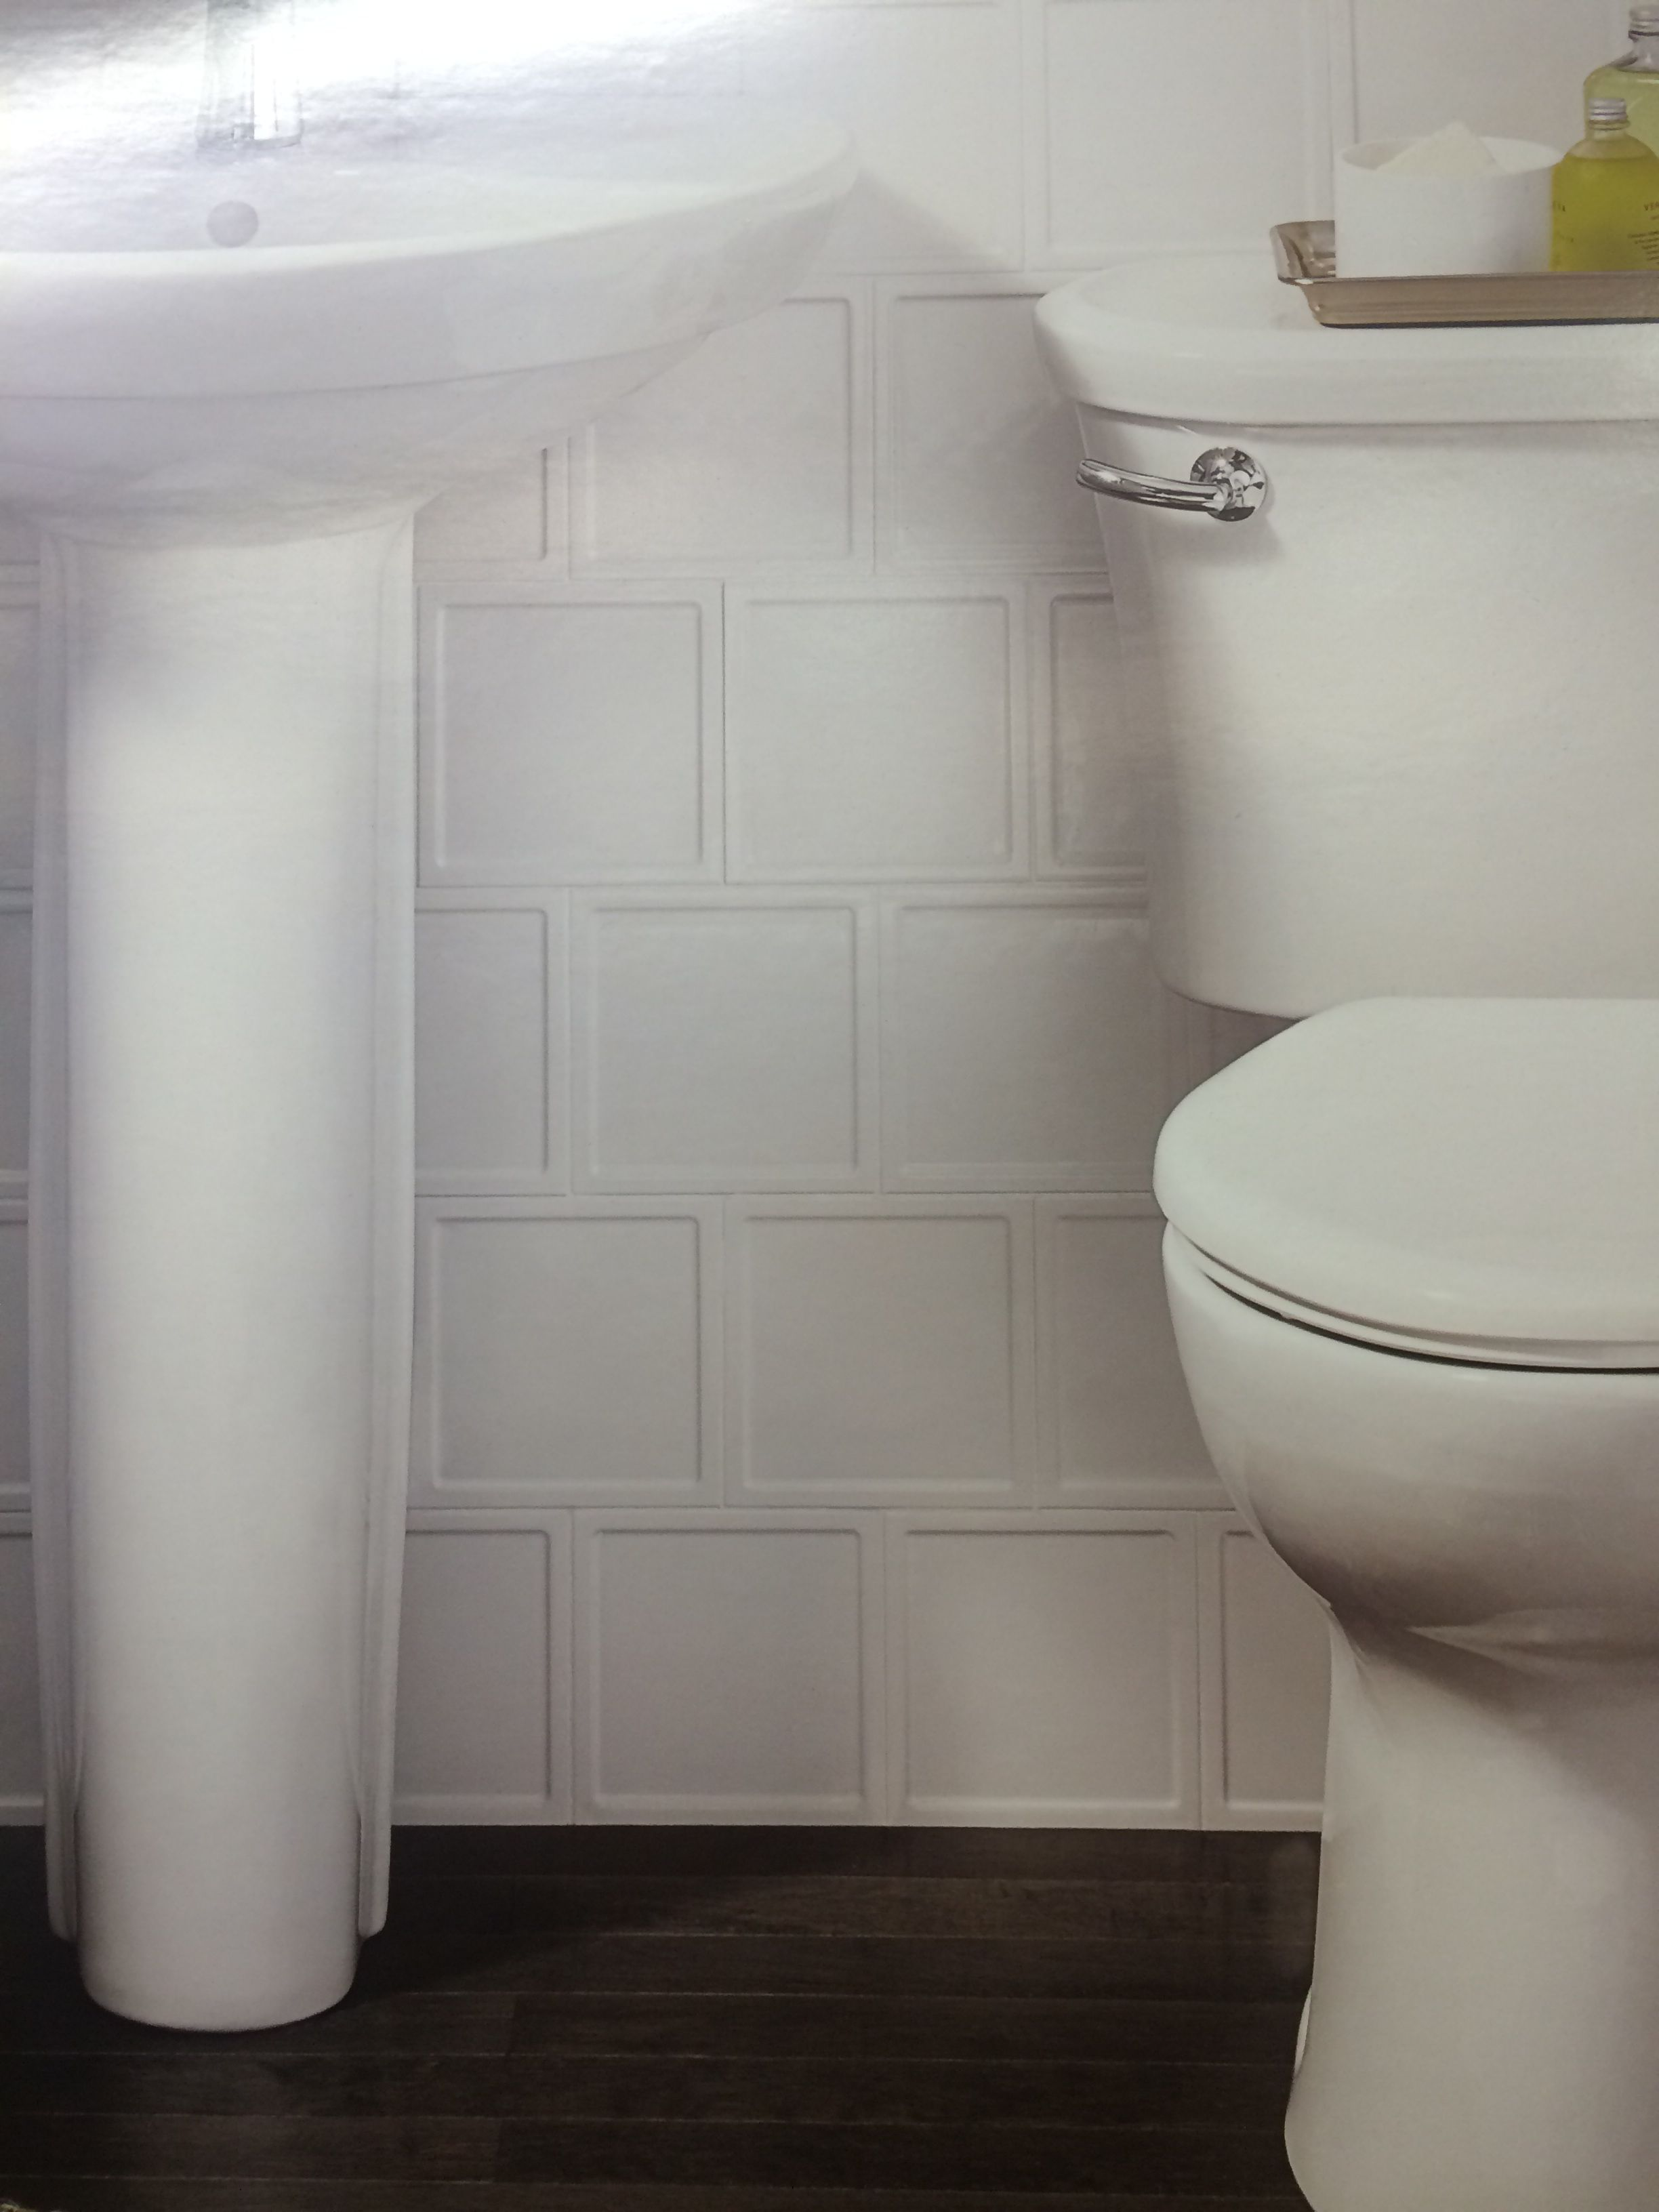 Interceramic Up And Down Glazed Ceramic Wall Tile Square White